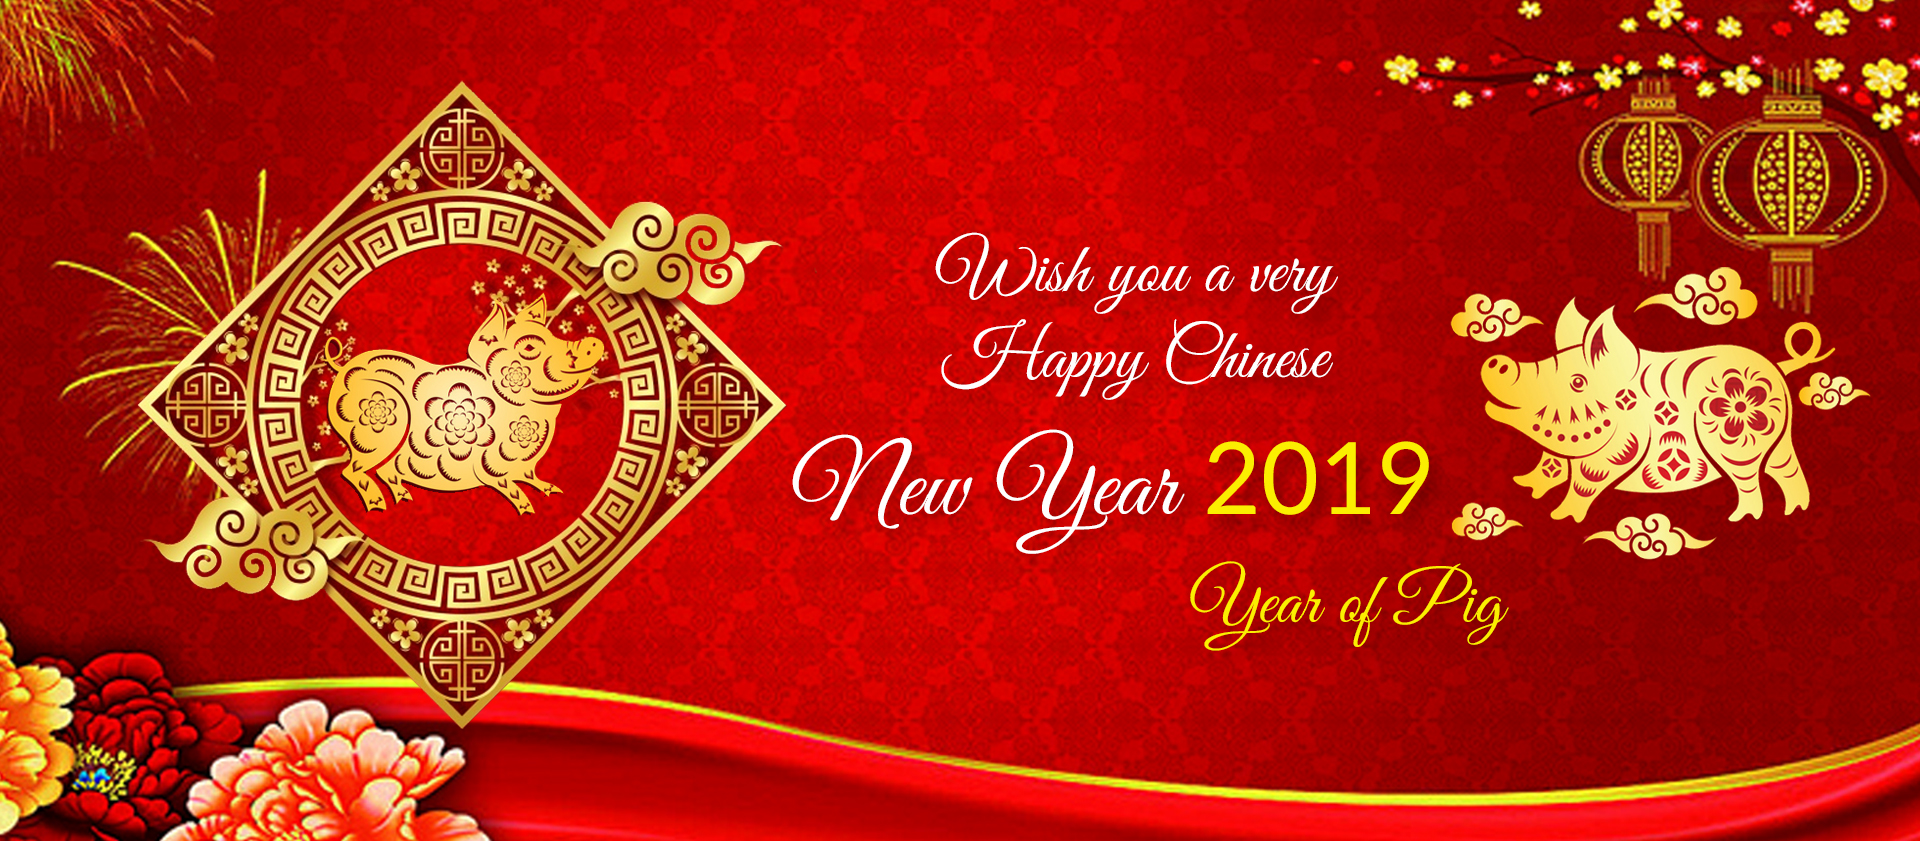 Mobile-Attendance-Website-Chinese-New-Year-Banner